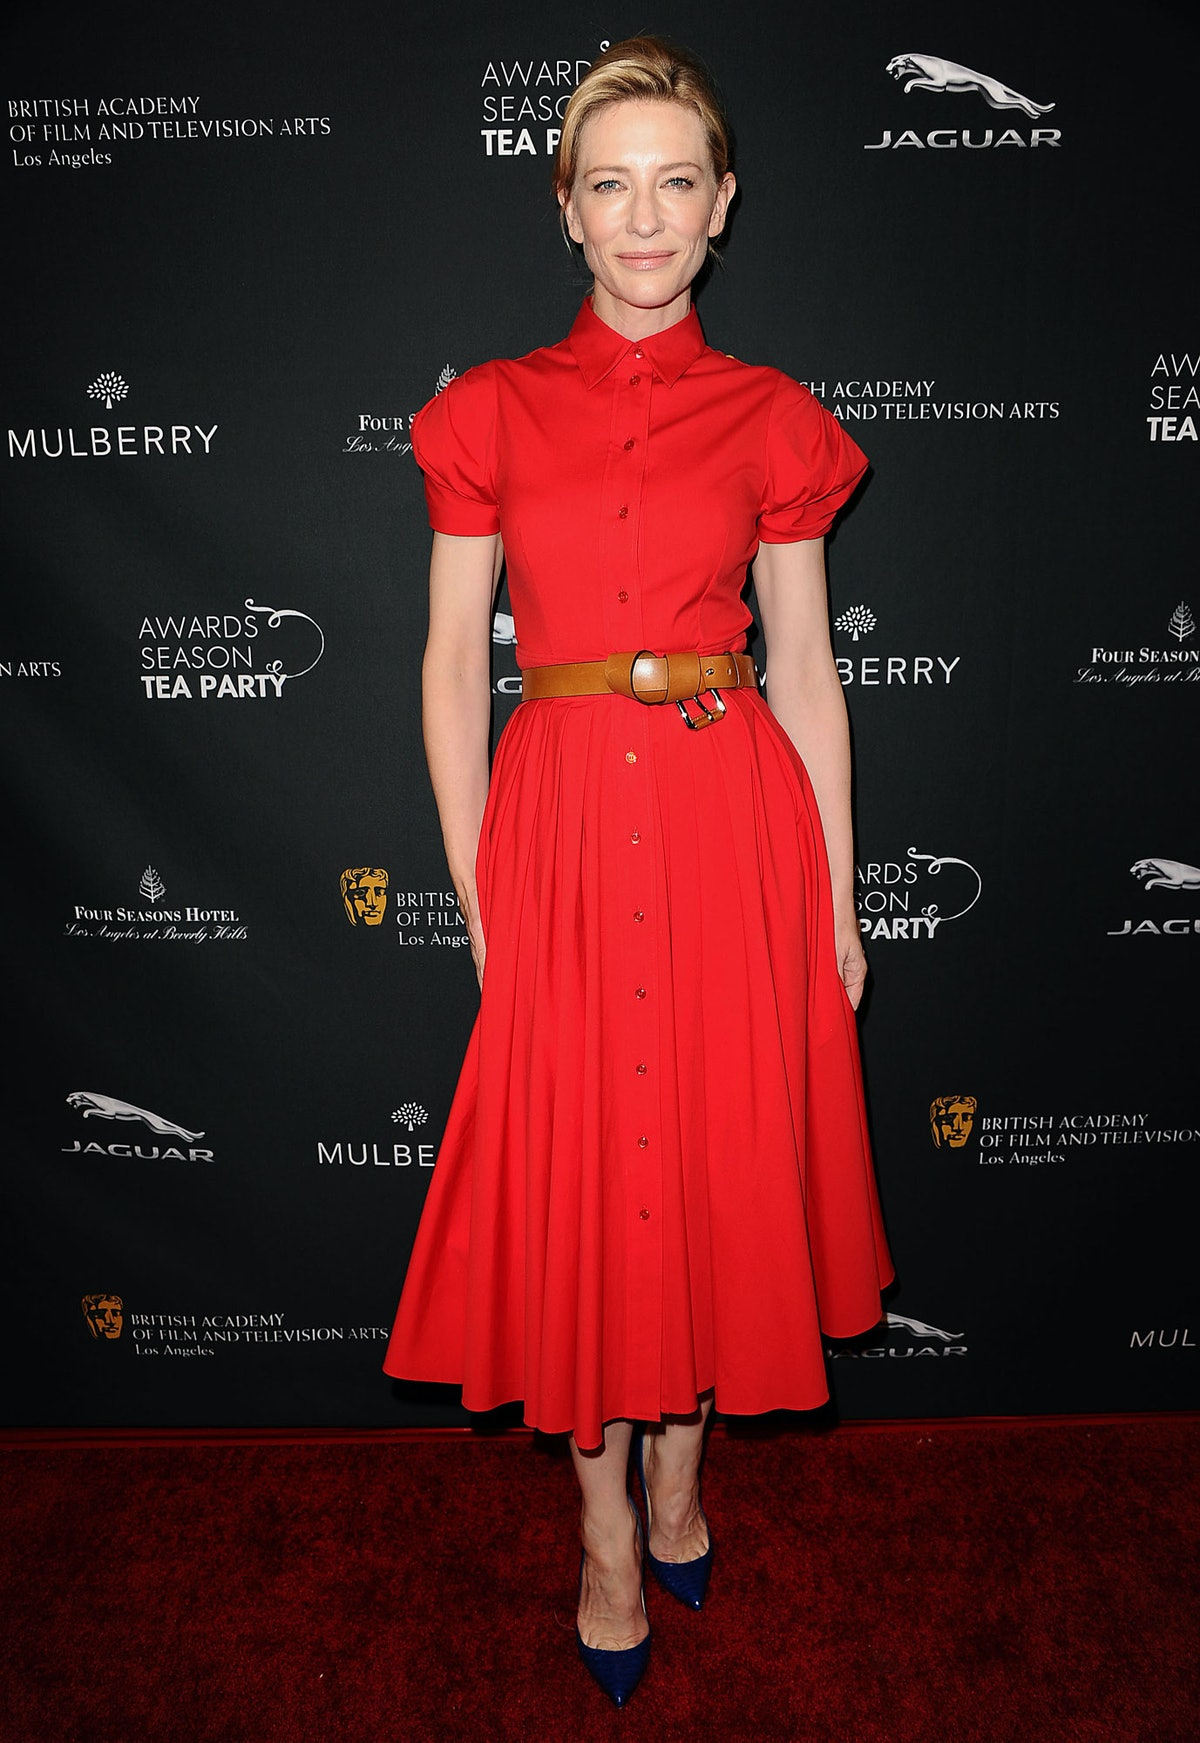 For the BAFTA Awards Season Tea Party, Blanchett wore a dainty buttoned-up [Michael Kors](http://www...